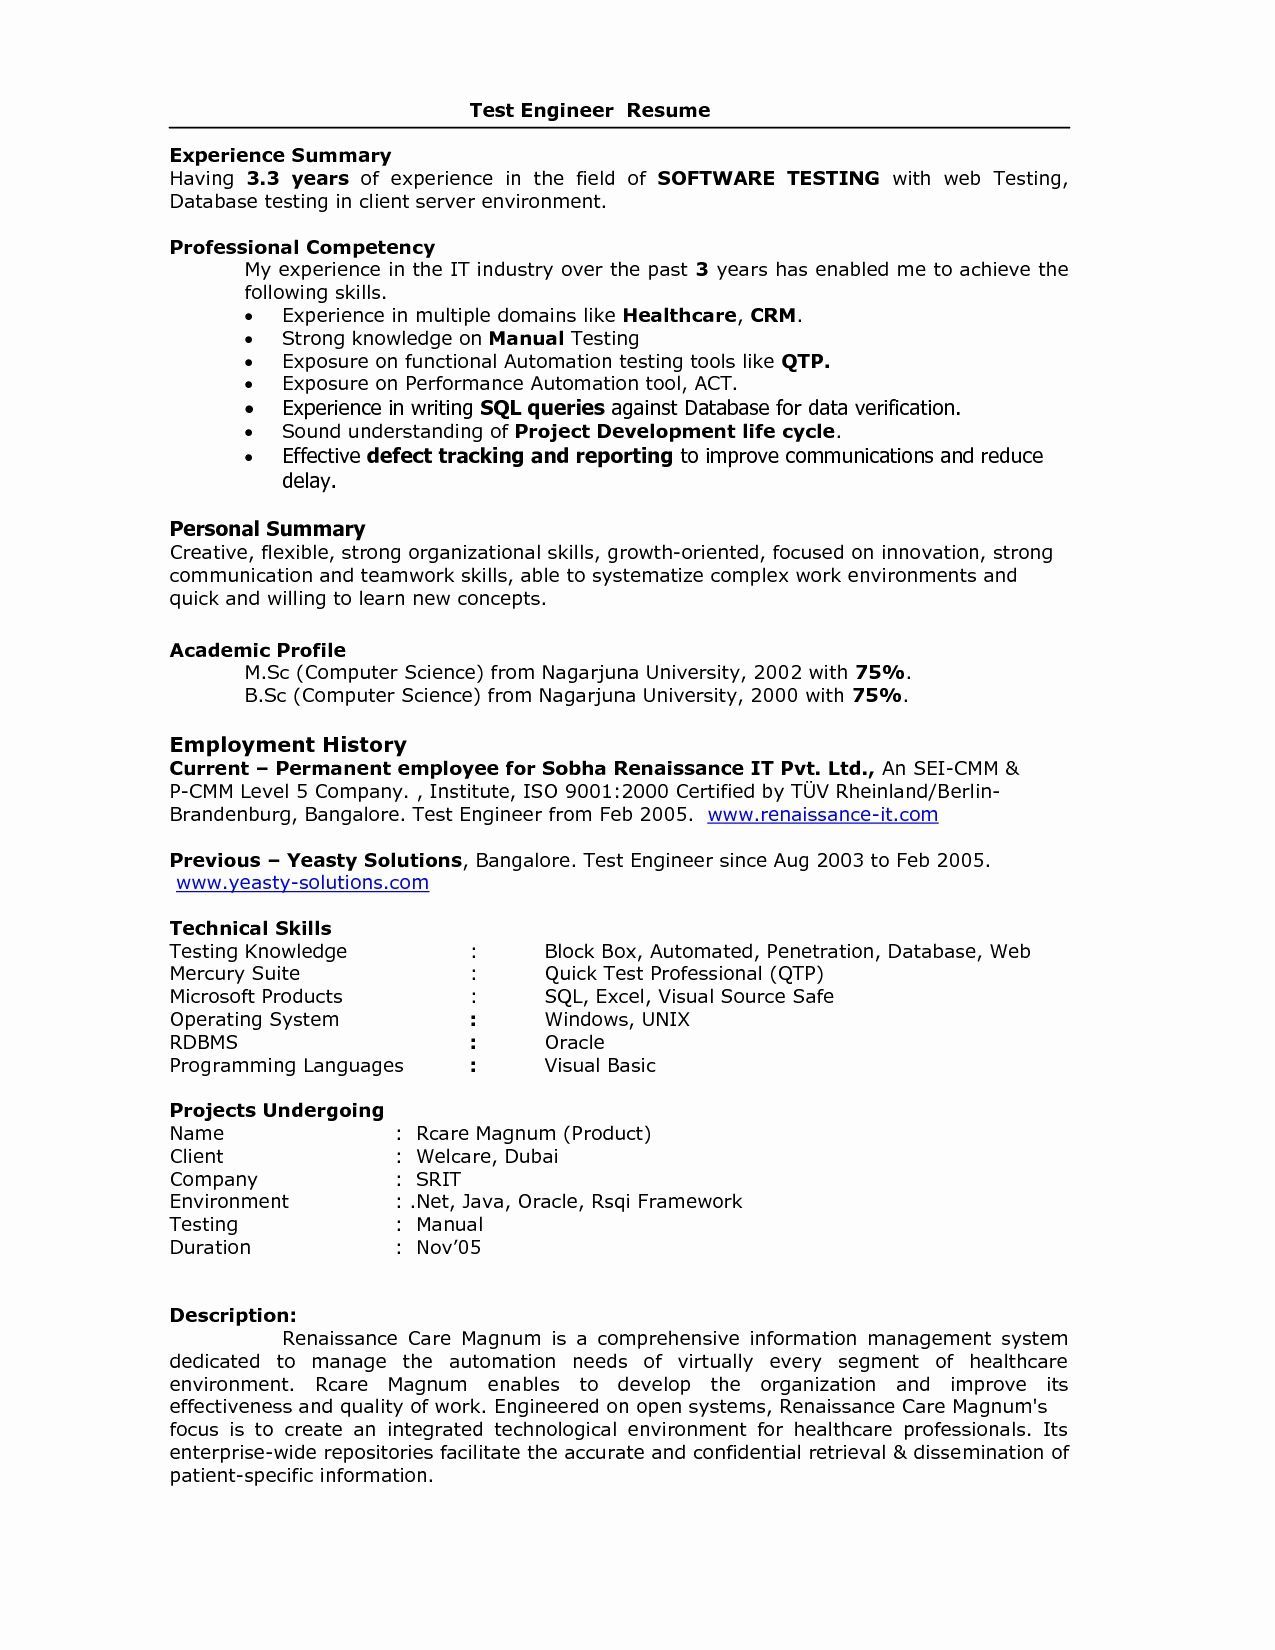 resume format for years experience in testing best sample cover letter manual self Resume Cover Letter For Manual Testing Resume